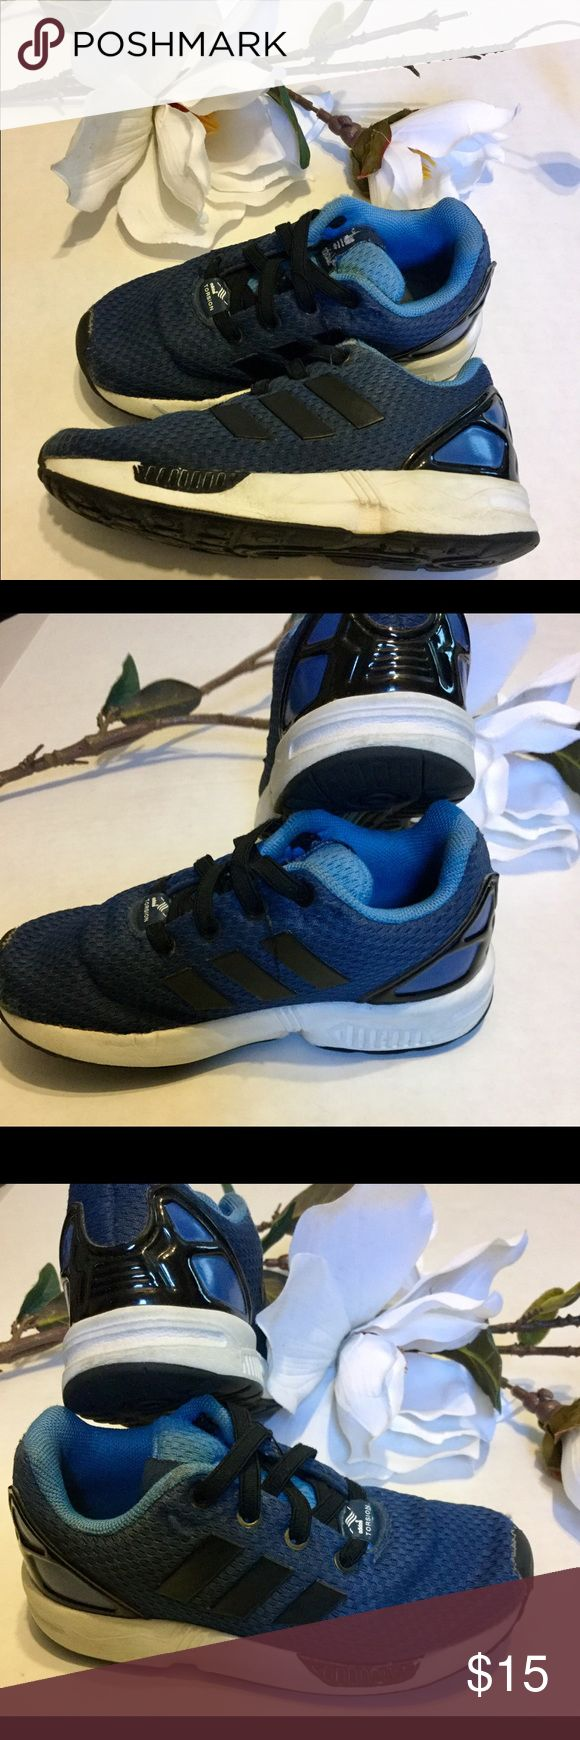 ⚜️Adidas Torsion Zflux Sneakers 9c⚜️ Adidas 9c Torsion ZX Flux no tie sneakers⚜️blue and black with black patent accents⚜️Flaws stain on tongue (see pics) minor signs of wear-but still in good conditions⚜️Please review all pics before purchasing adidas Shoes Sneakers